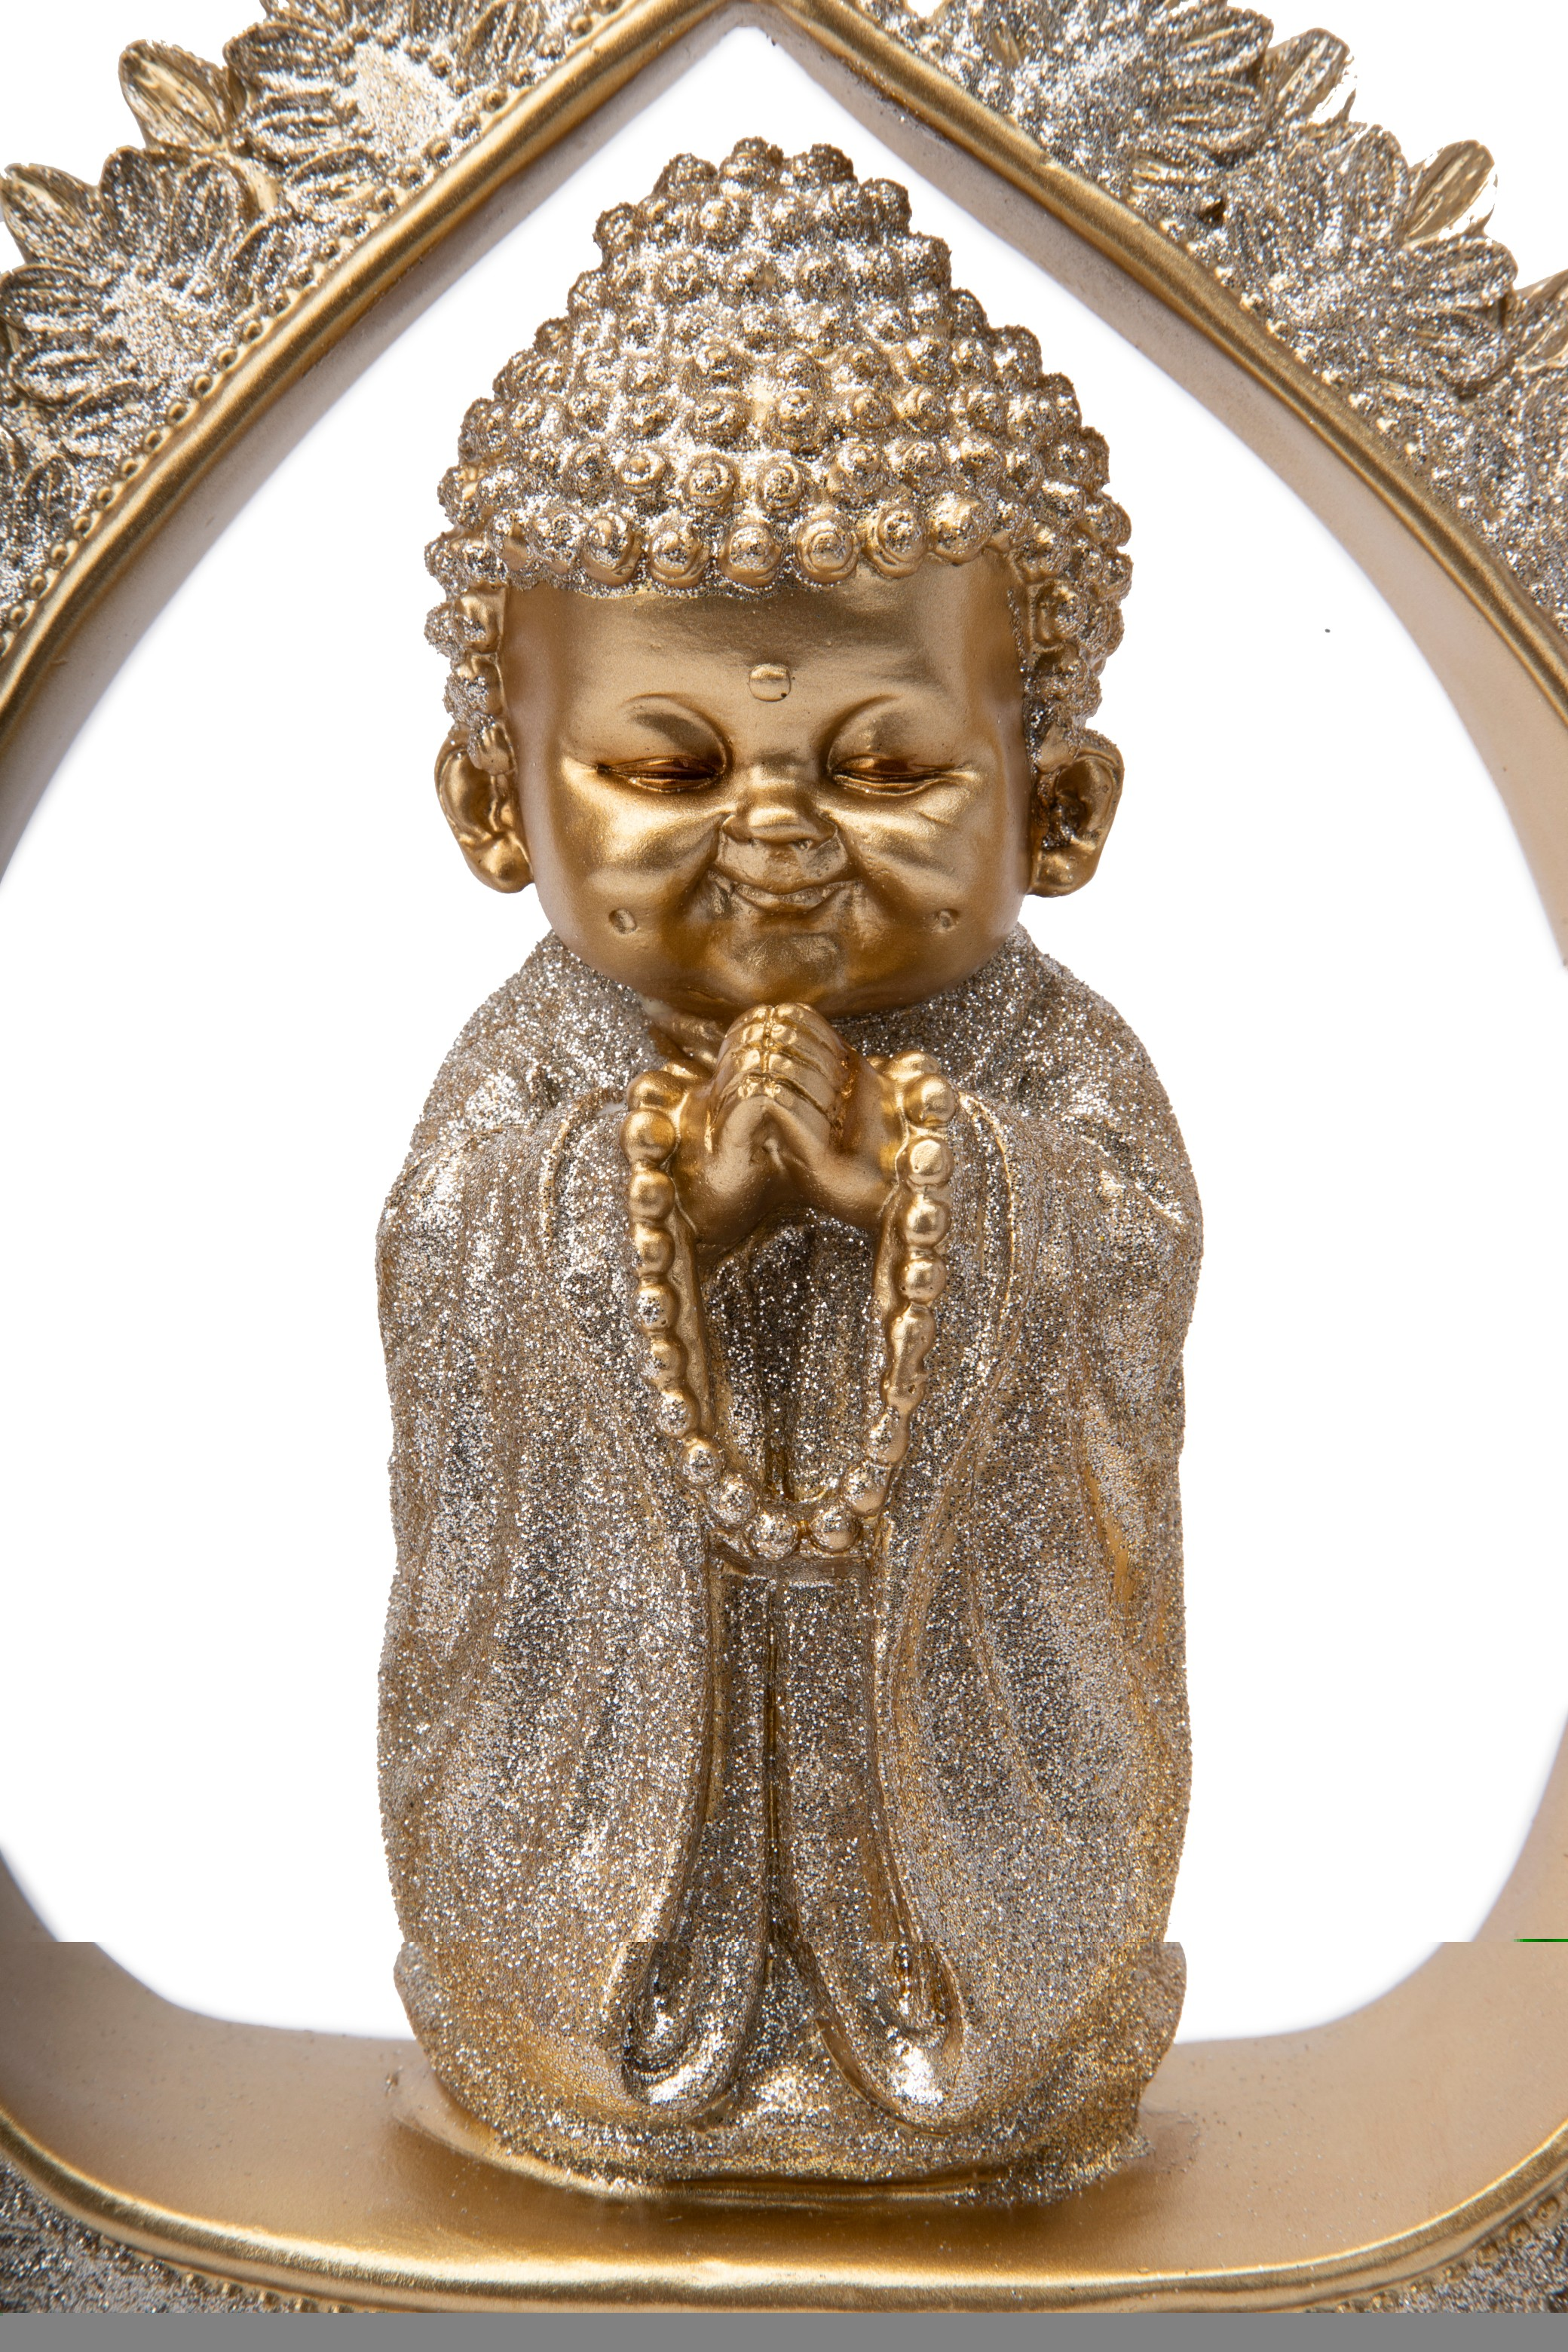 FIO PRAYER MONK IN PEACE FLAME GOLD Figurines in Gold Colour by Living Essence